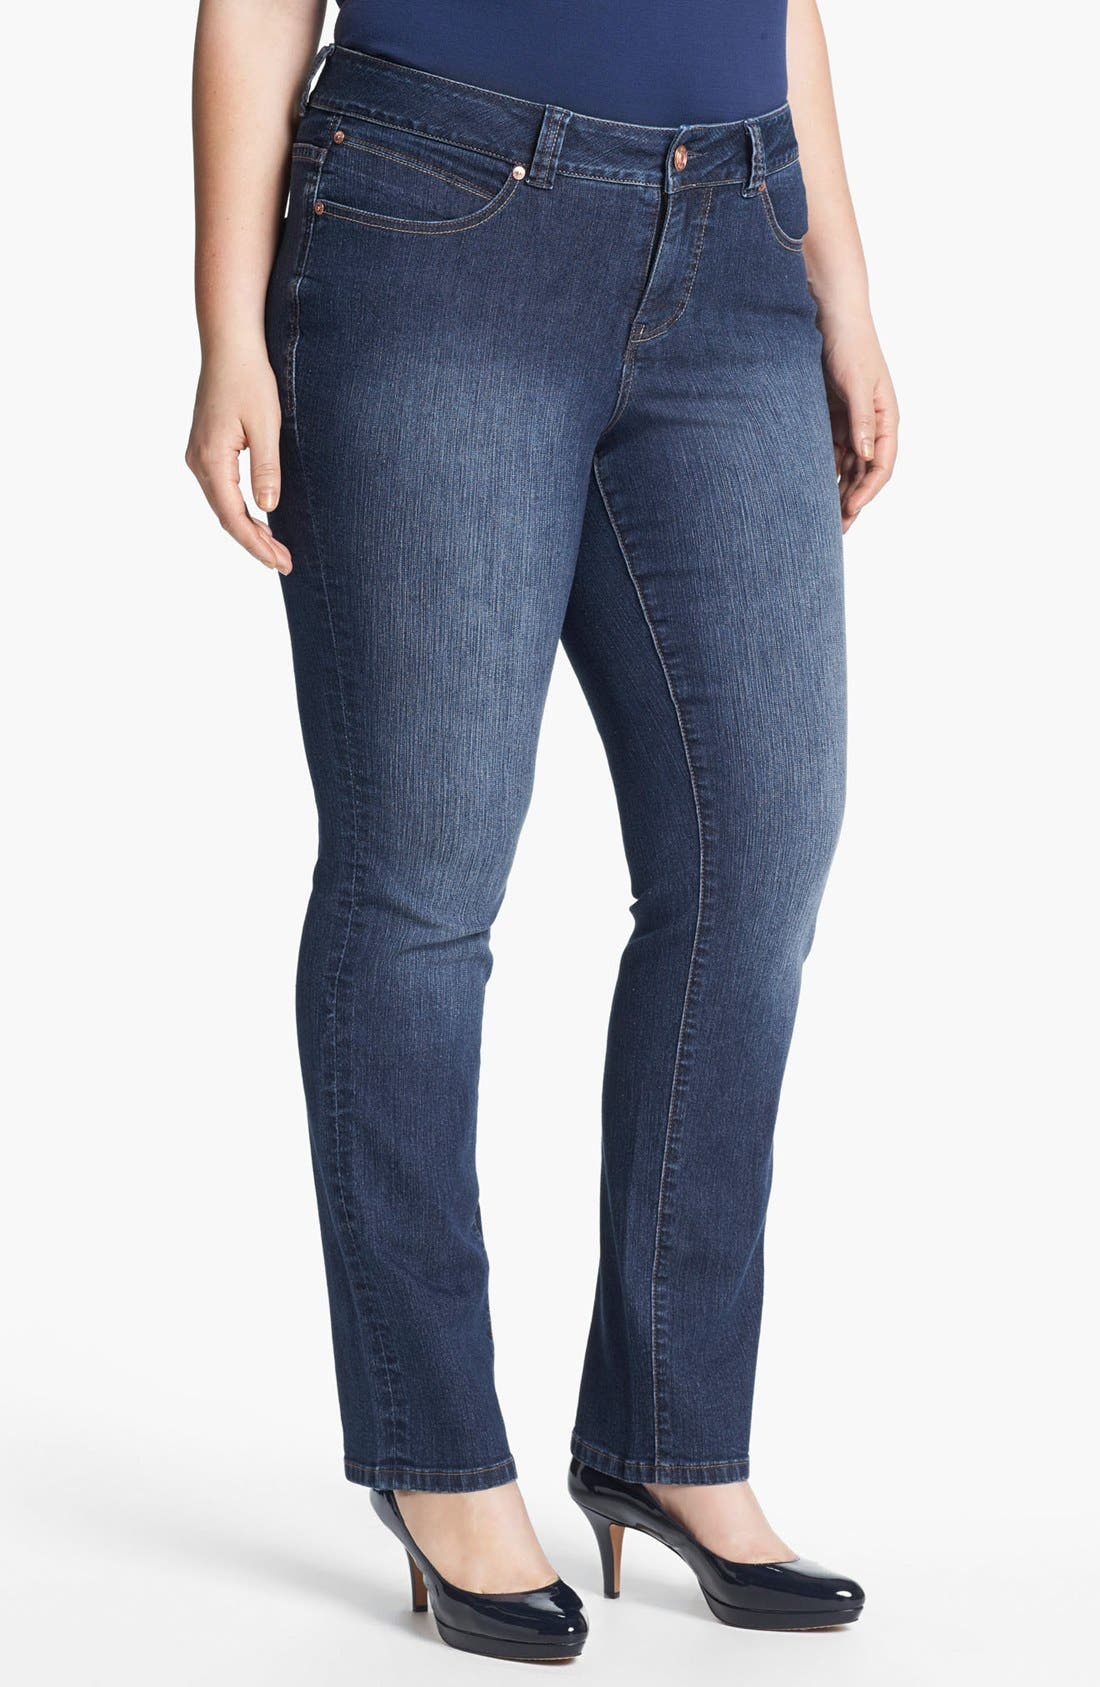 Main Image - Jag Jeans 'Andie' Straight Leg Jeans (Plus Size)